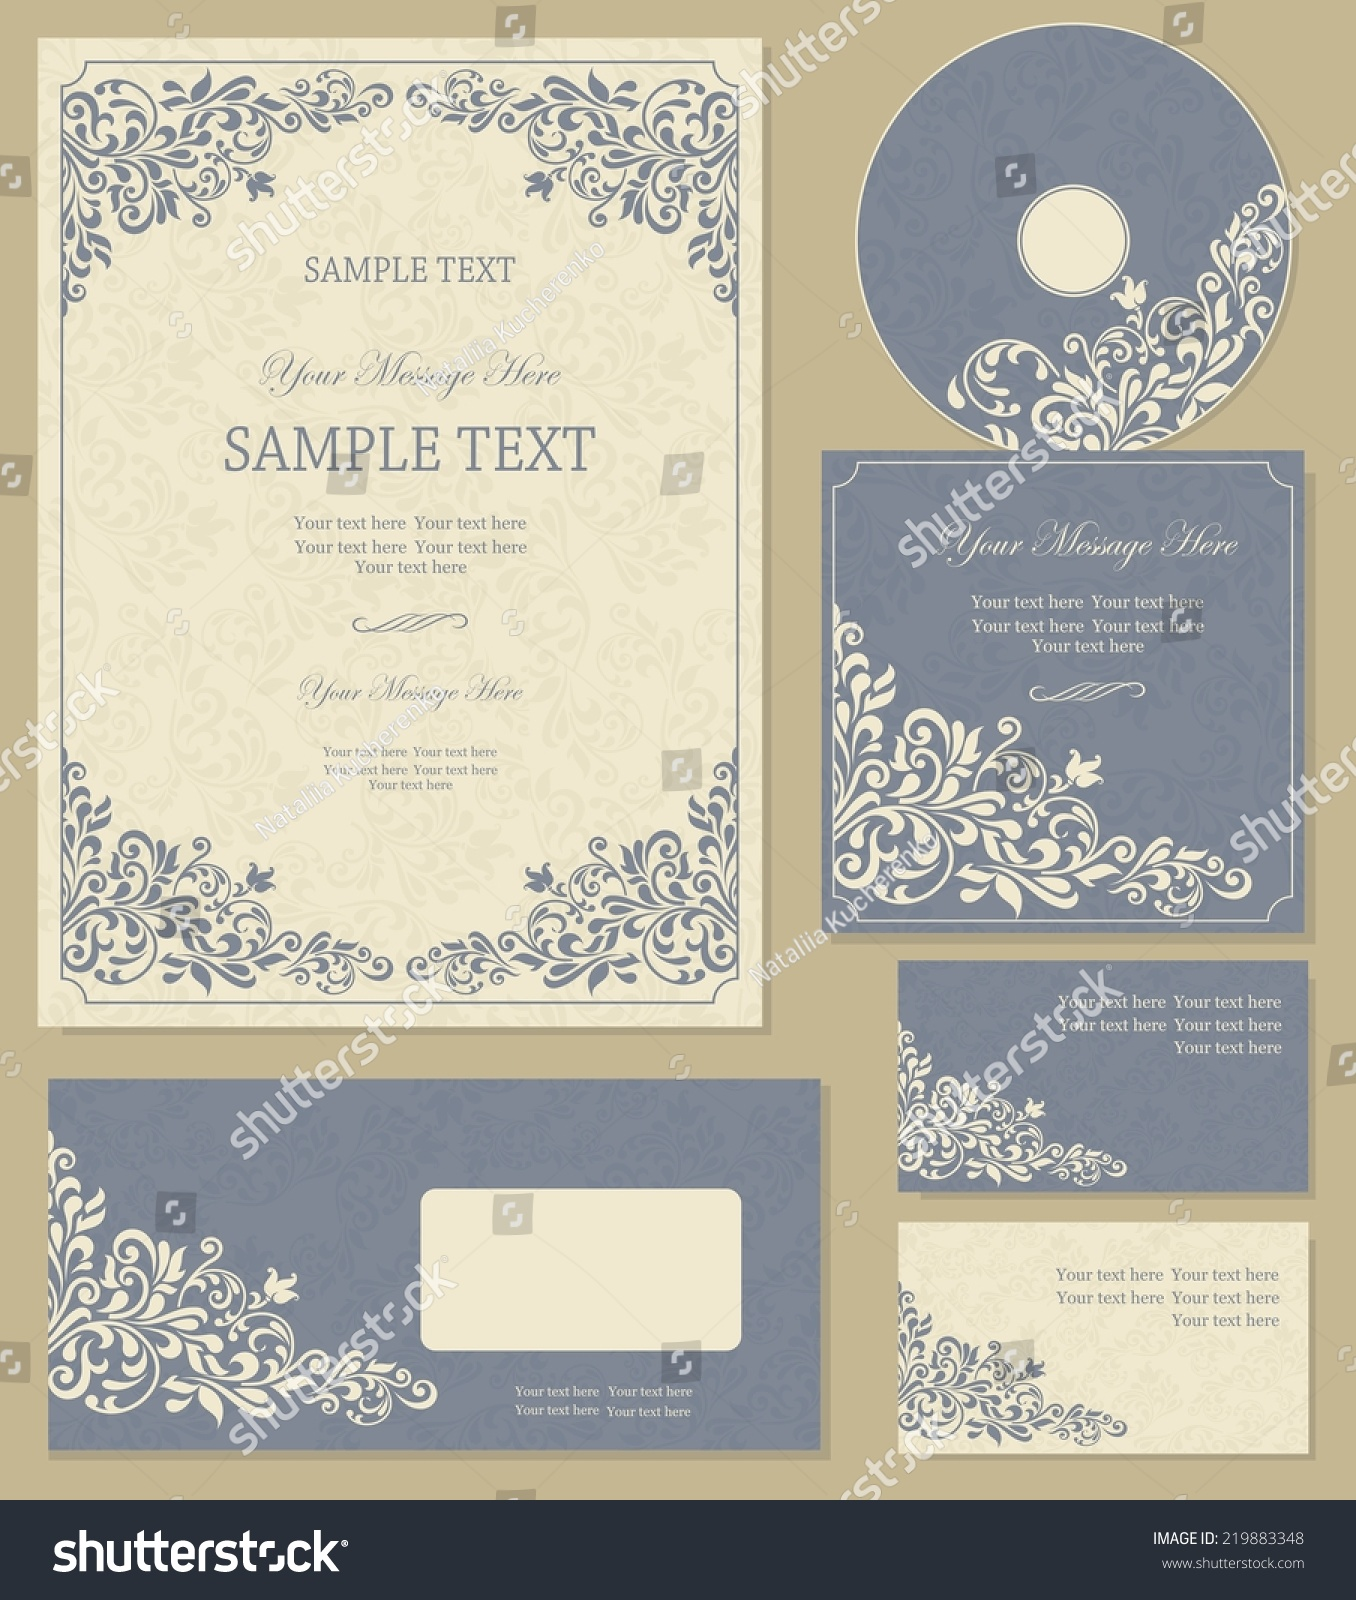 Business Cards Invitations Abstract Background Any Vector – Business Card Invitations